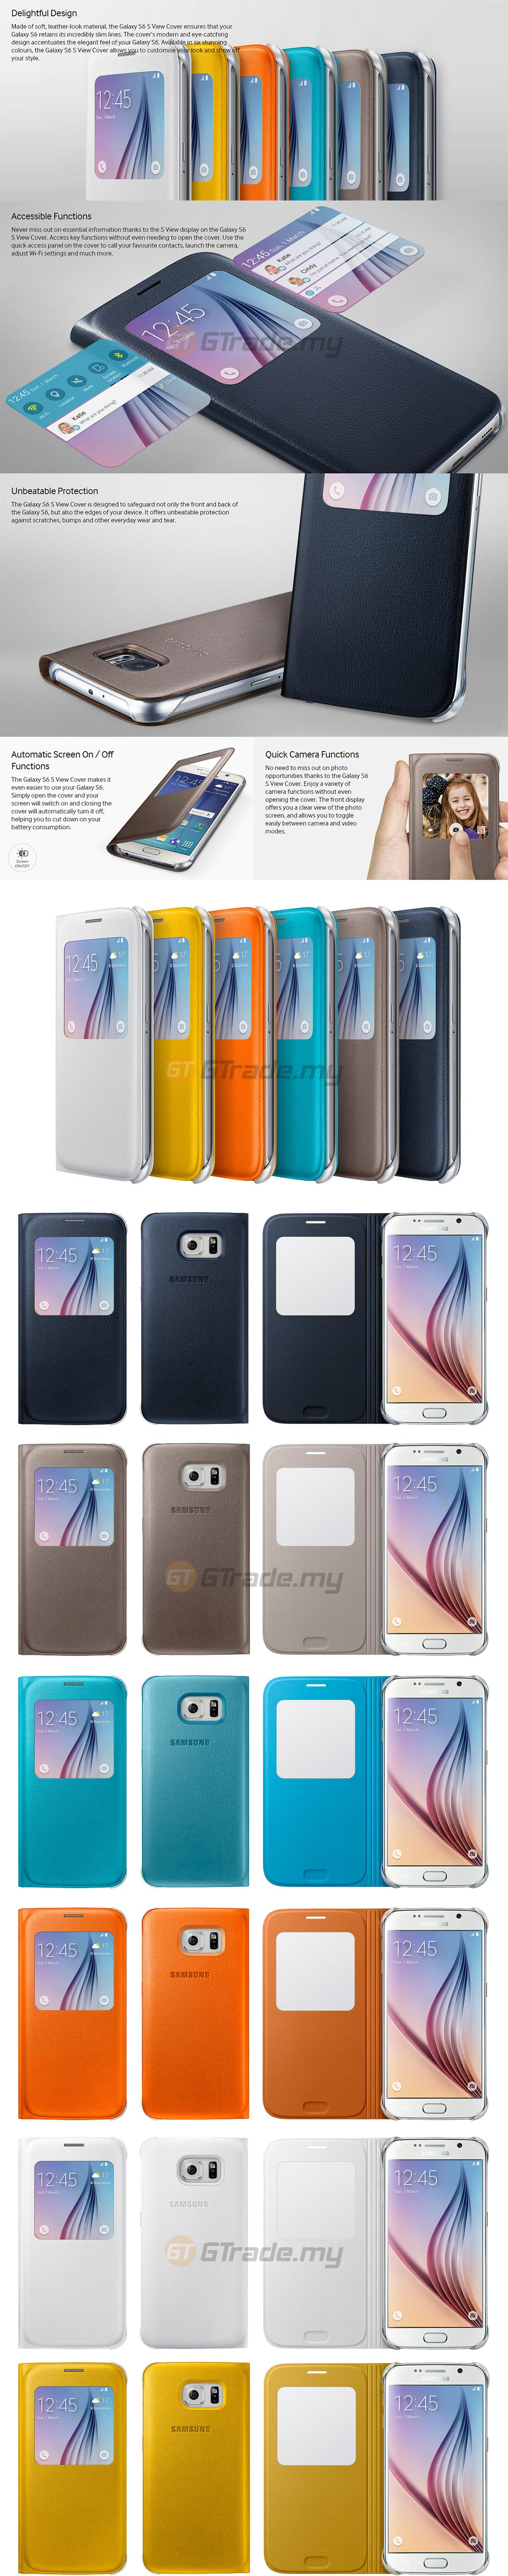 samsung-original-official-s-view-cover-case-galaxy-s6-p